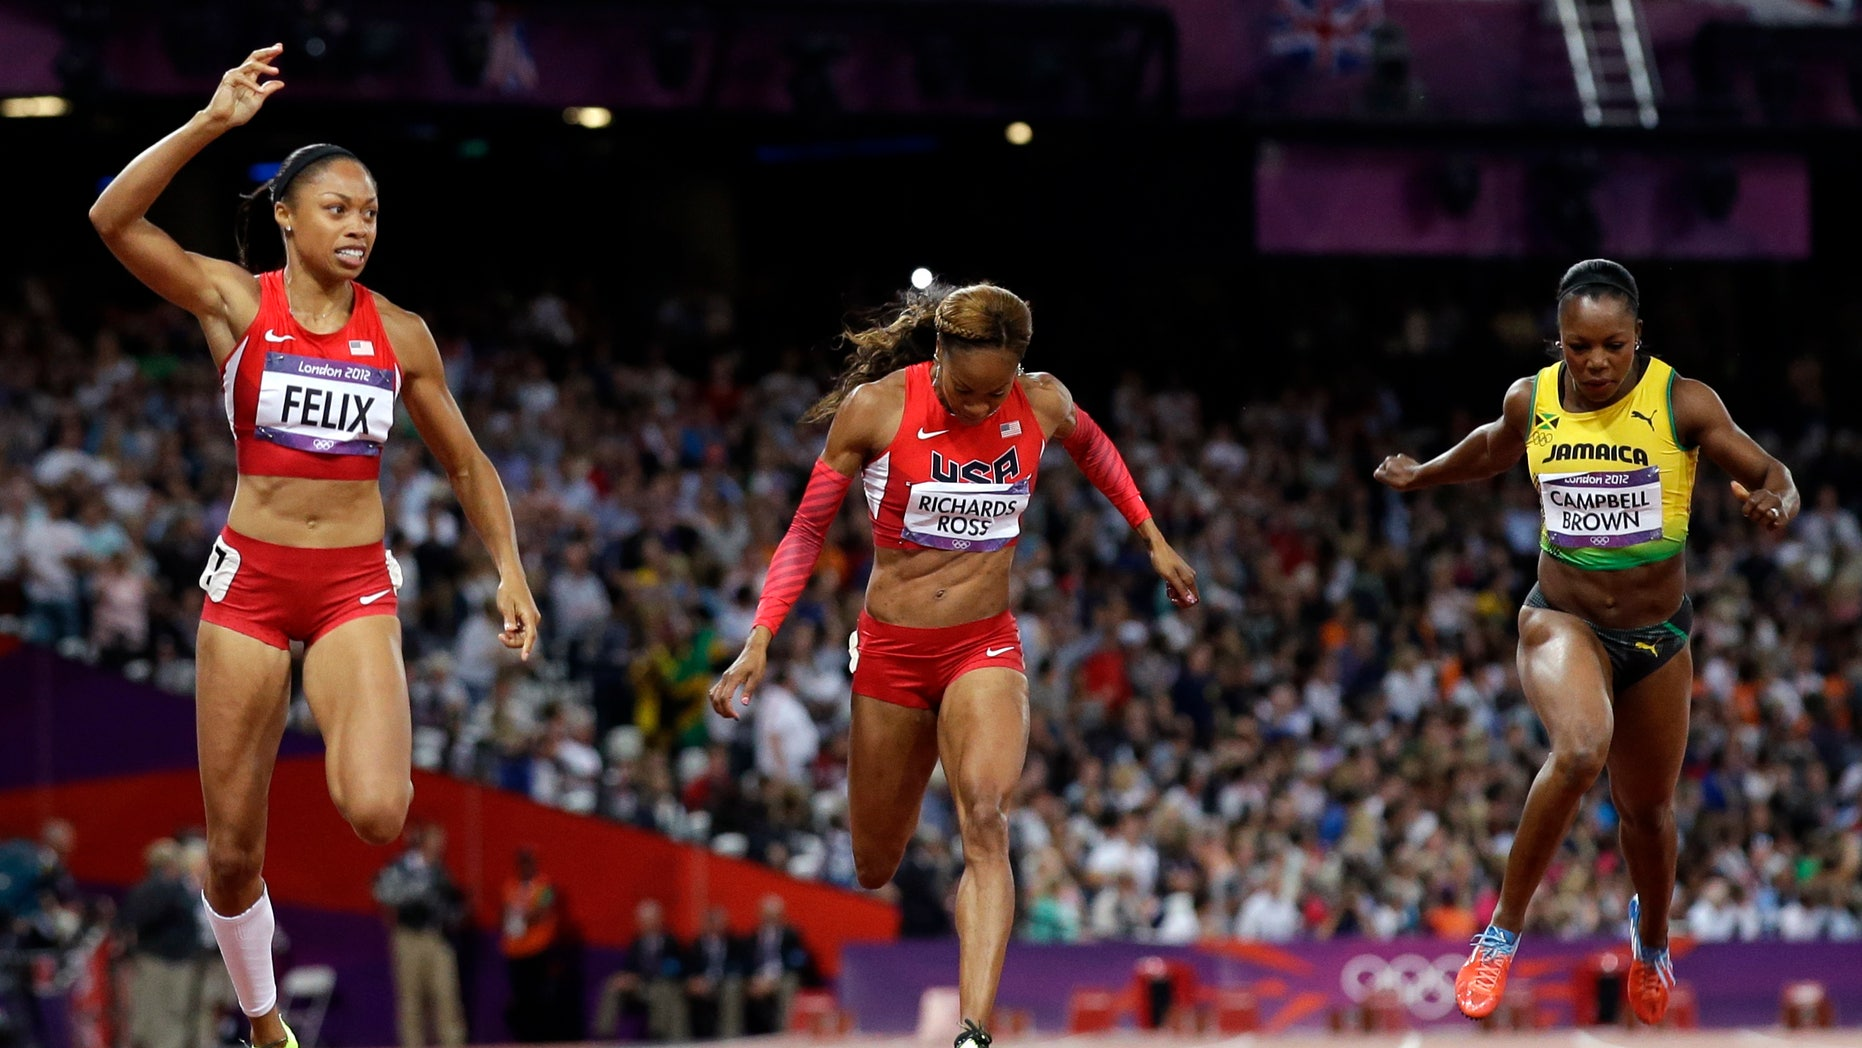 Aug. 8, 2012: United States' Allyson Felix leads teammate Sanya Richards-Ross and Jamaica's Veronica Campbell-Brown to win the women's 200-meter final during the athletics in the Olympic Stadium at the 2012 Summer Olympics, London.